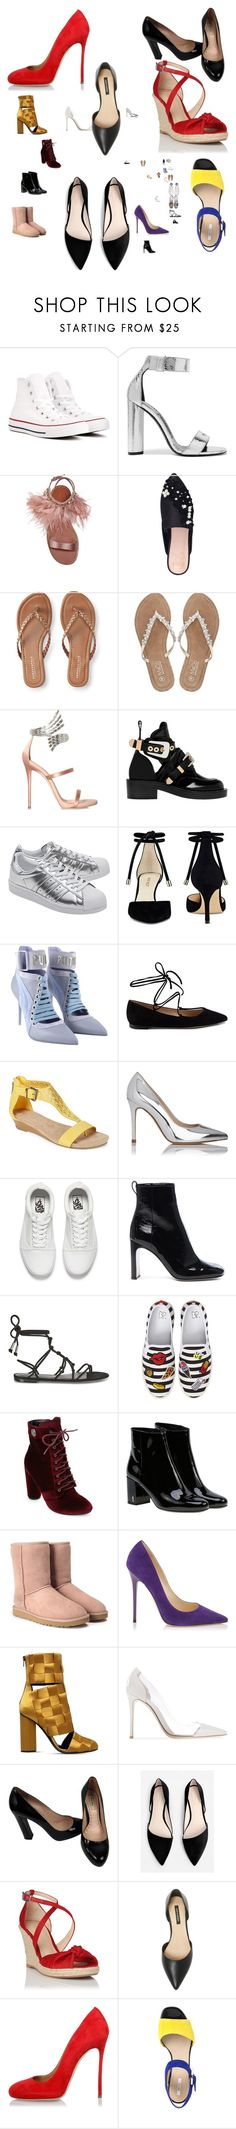 """""""Set of my favorite looking shoes 4-12-17 # 1"""" by myswag1617 ❤ liked on Polyvore featuring Converse, Tom Ford, Miu Miu, KG Kurt Geiger, Aéropostale, M&Co, Giuseppe Zanotti, Balenciaga, adidas Originals and Nine West"""